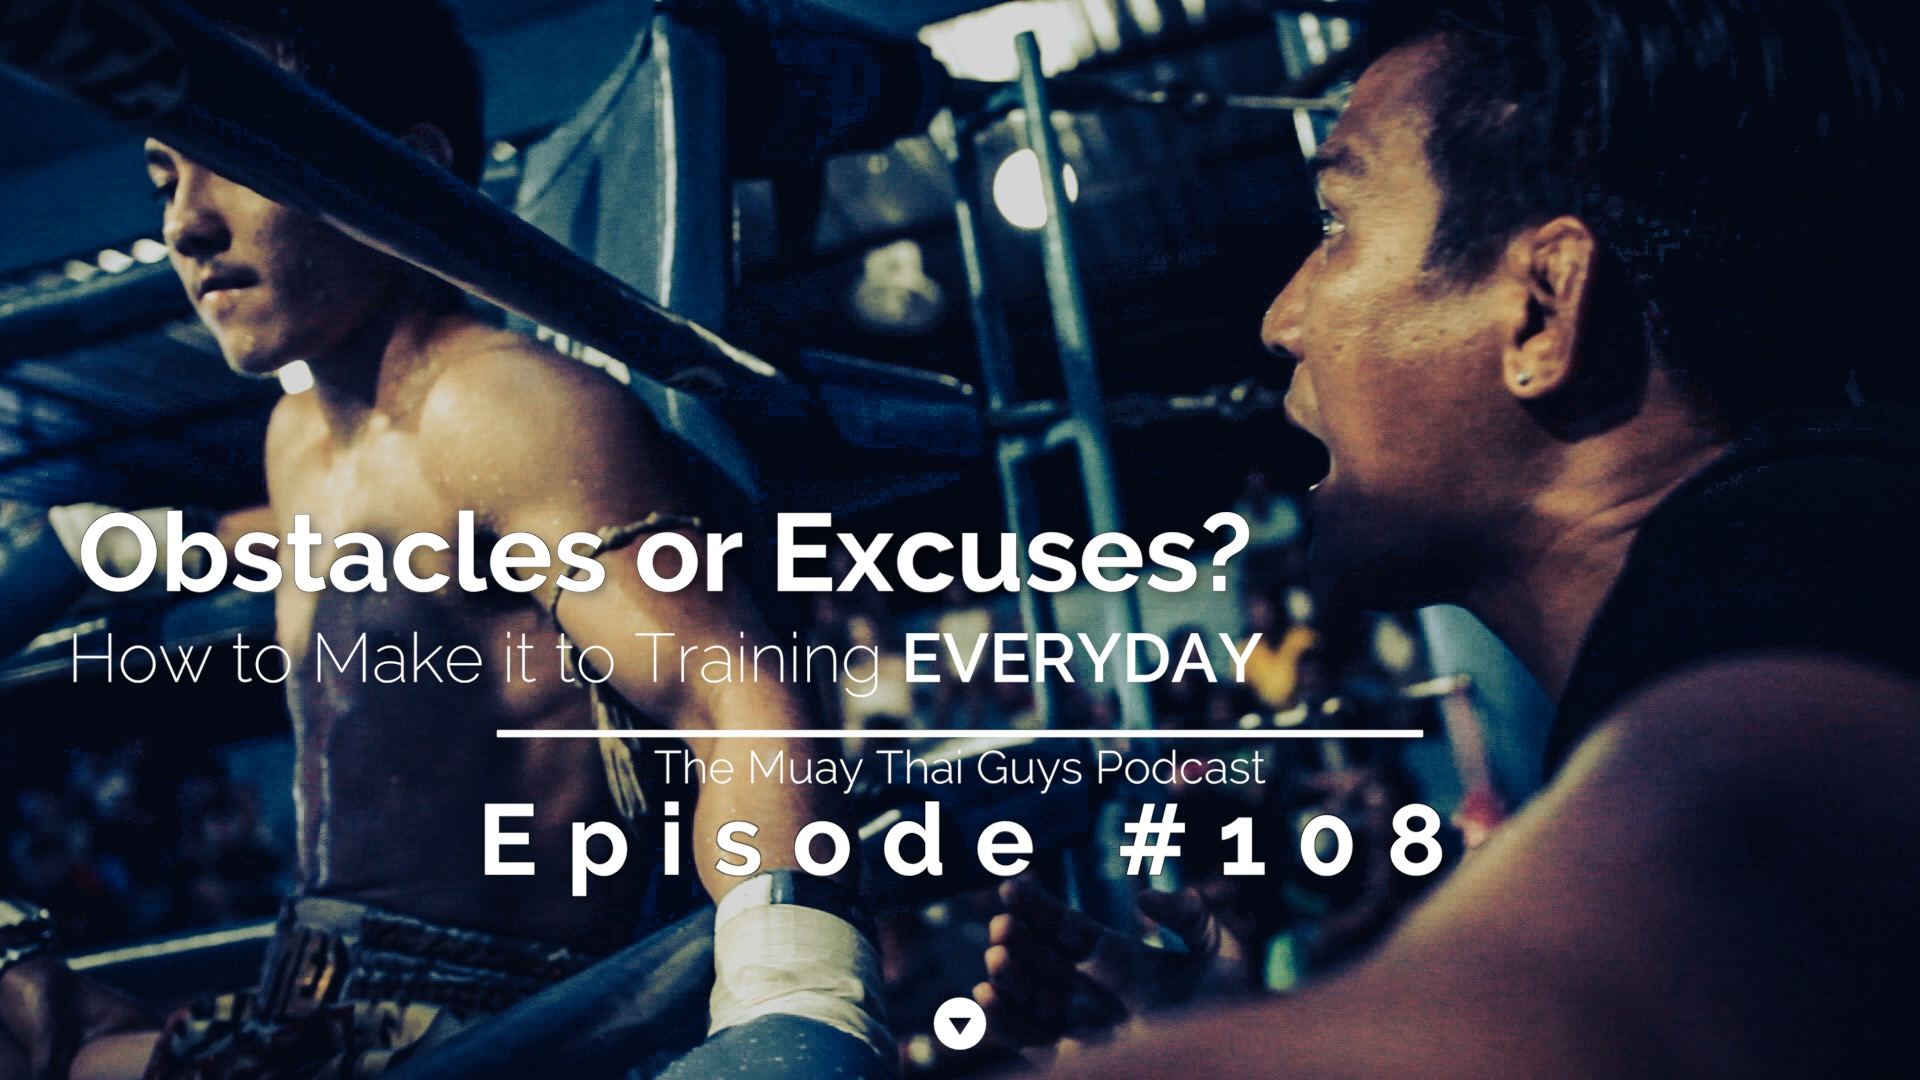 Obstacles or Excuses? How to make it to the gym EVERYDAY | TMTG #108